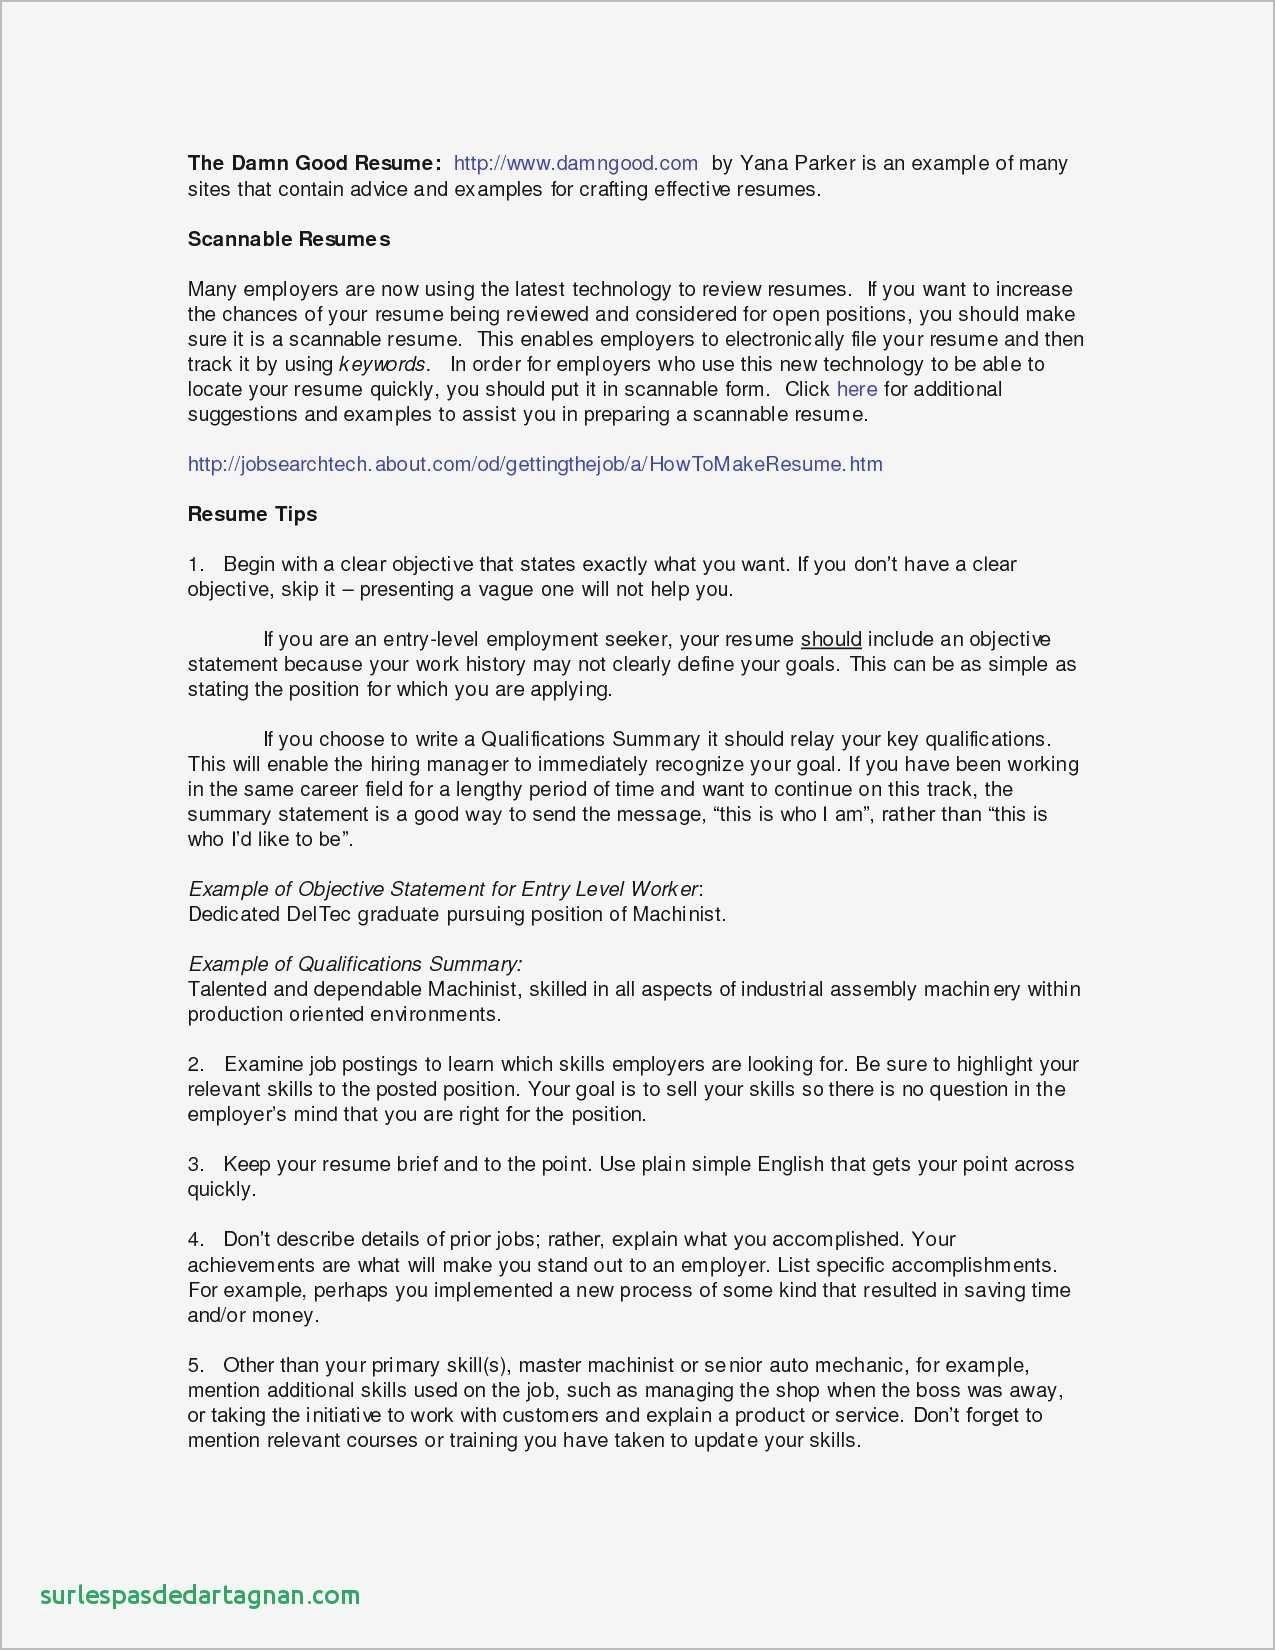 Describe Your Computer Skills Resume Sample - 73 Awesome Basic Puter Skills Resume Chart